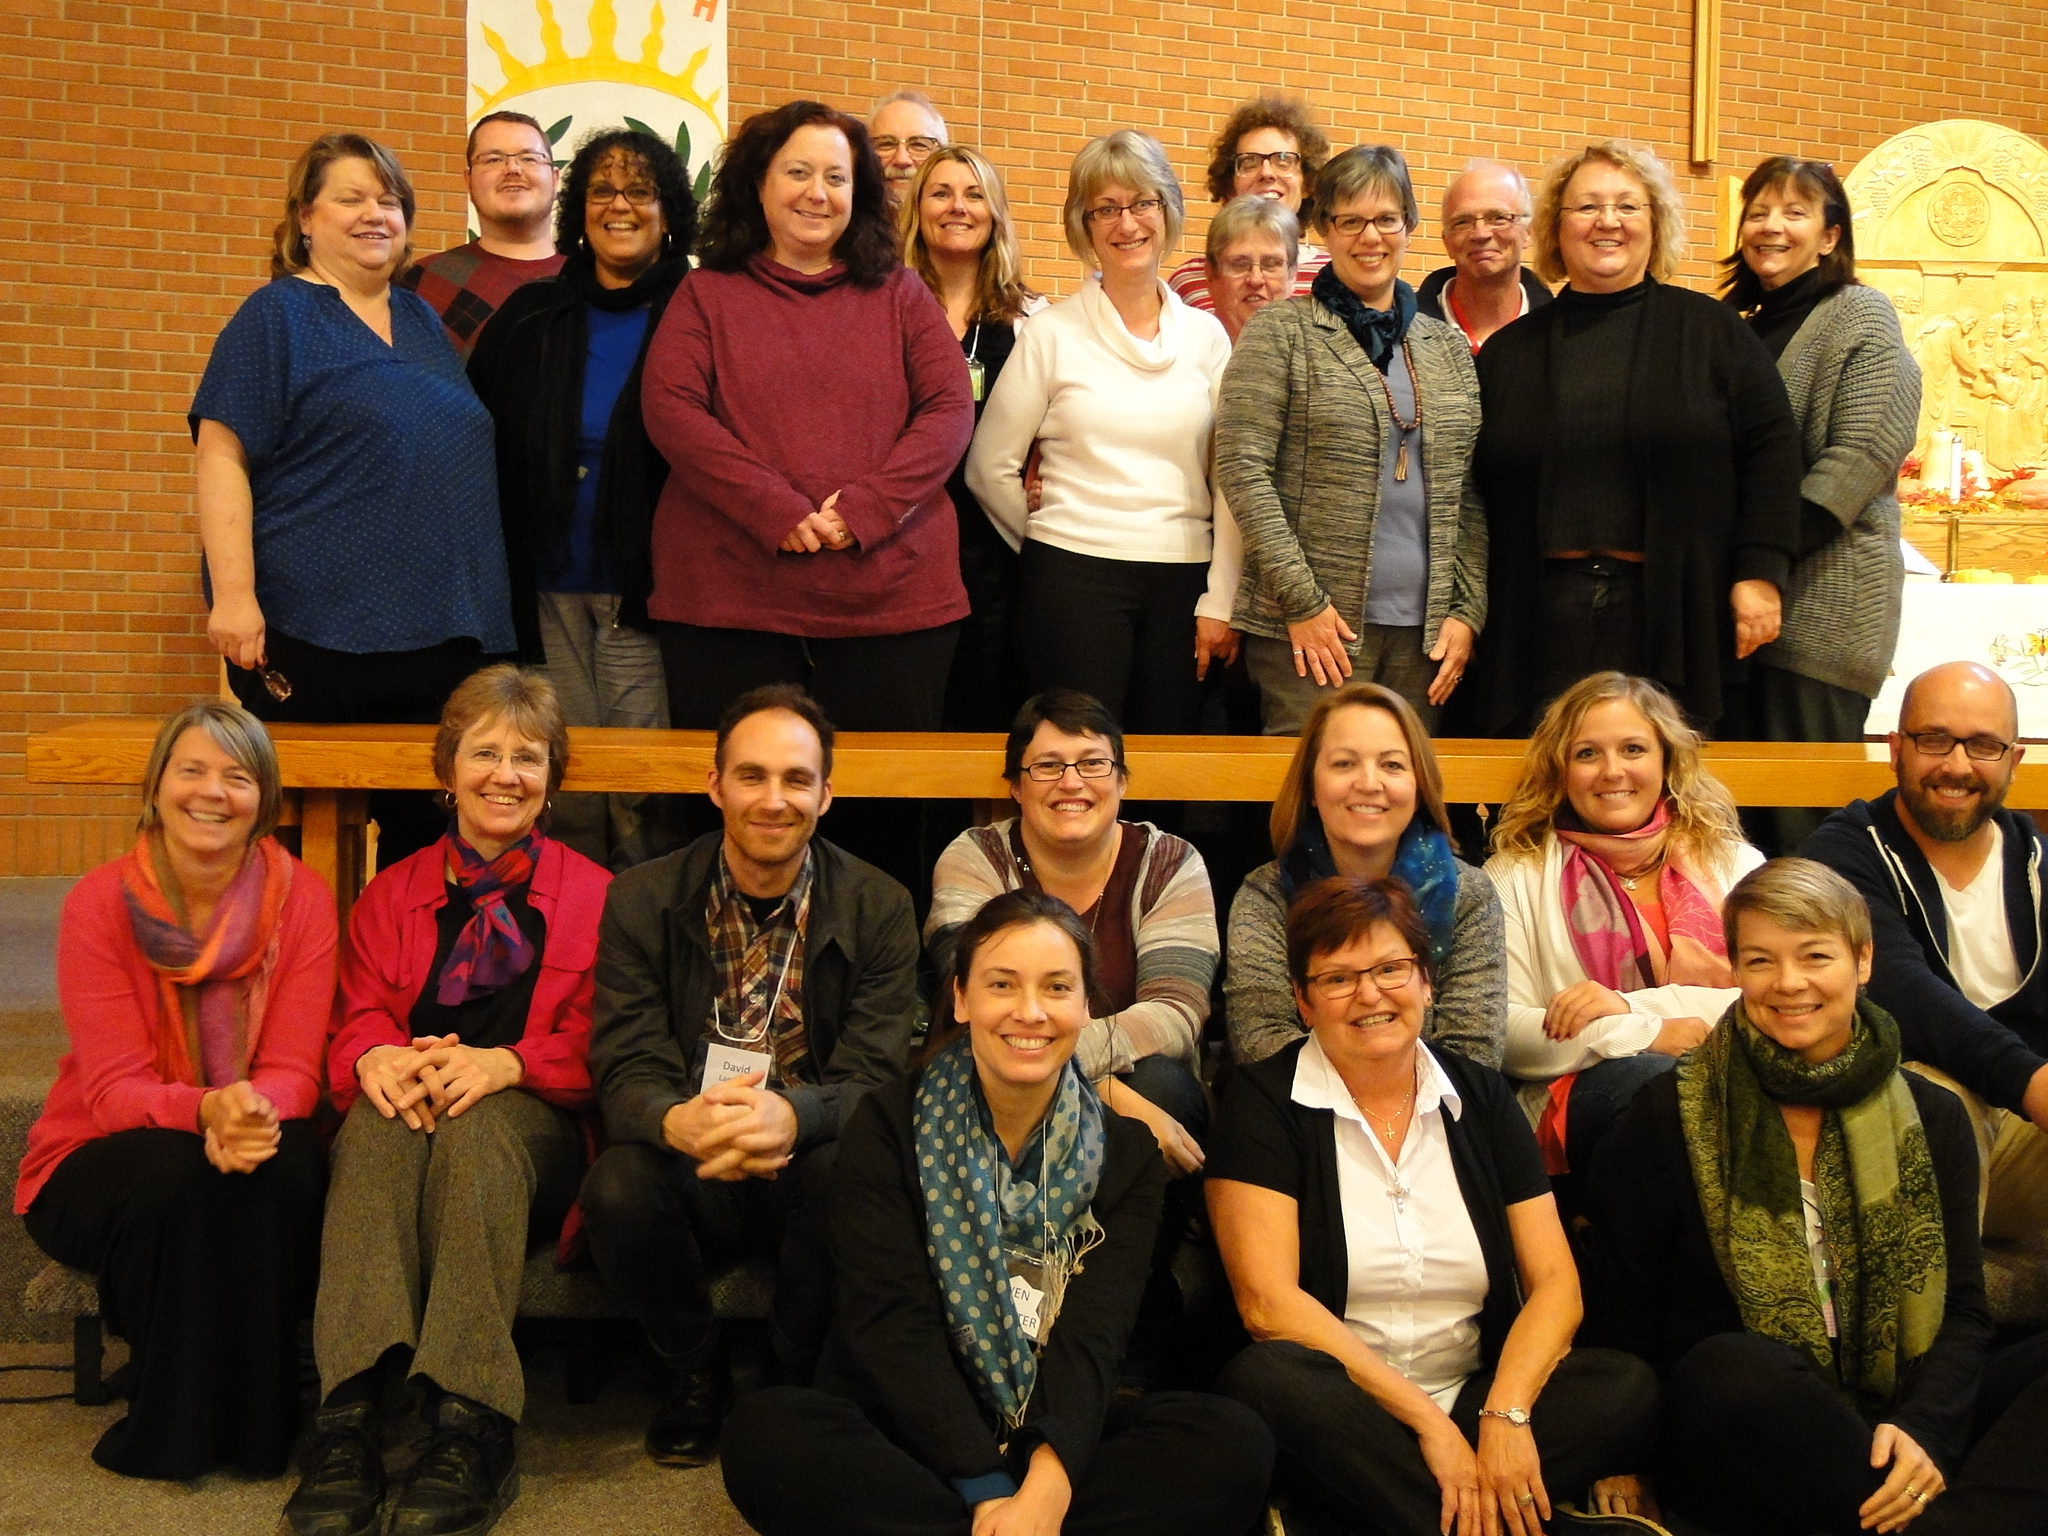 The Fall Learning Circle of the 2015-2016 Social Ministry Year